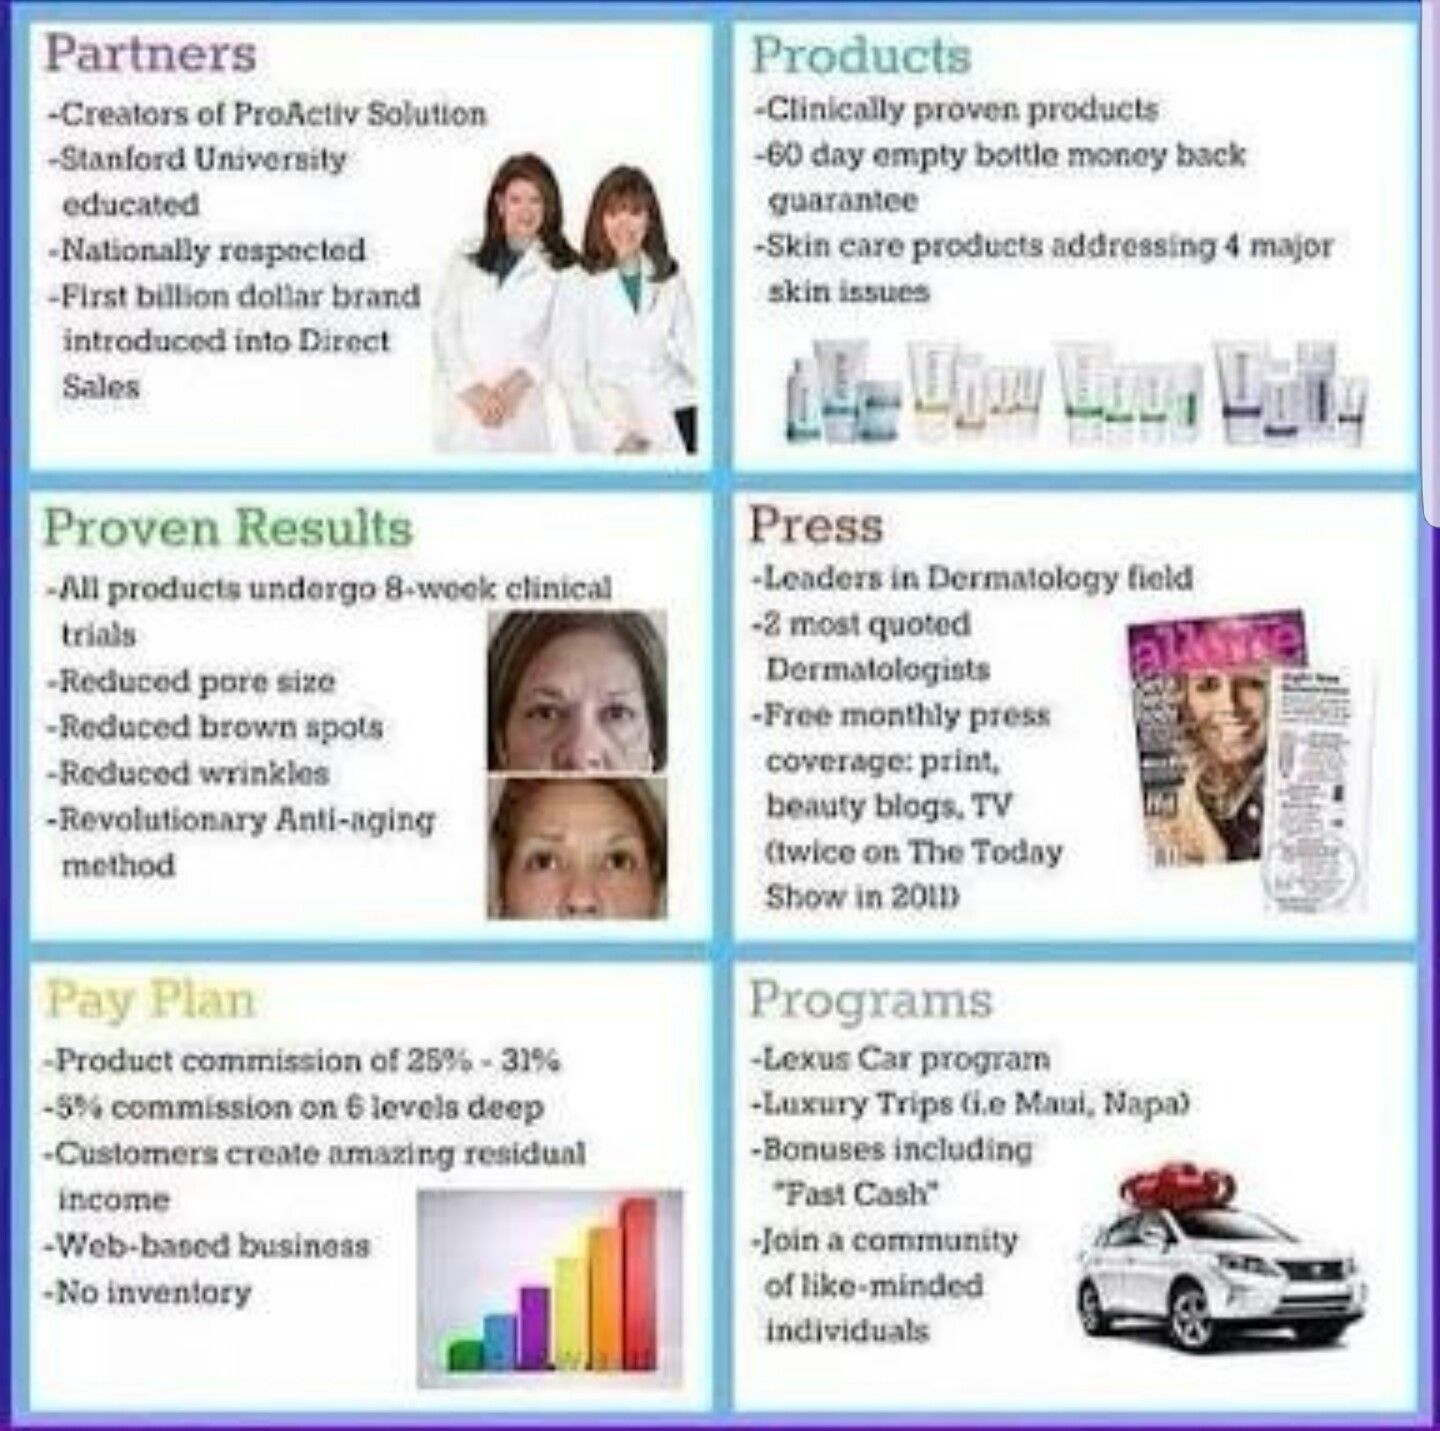 An exciting business opportunity with R+F!! gwendab2@gmail.com